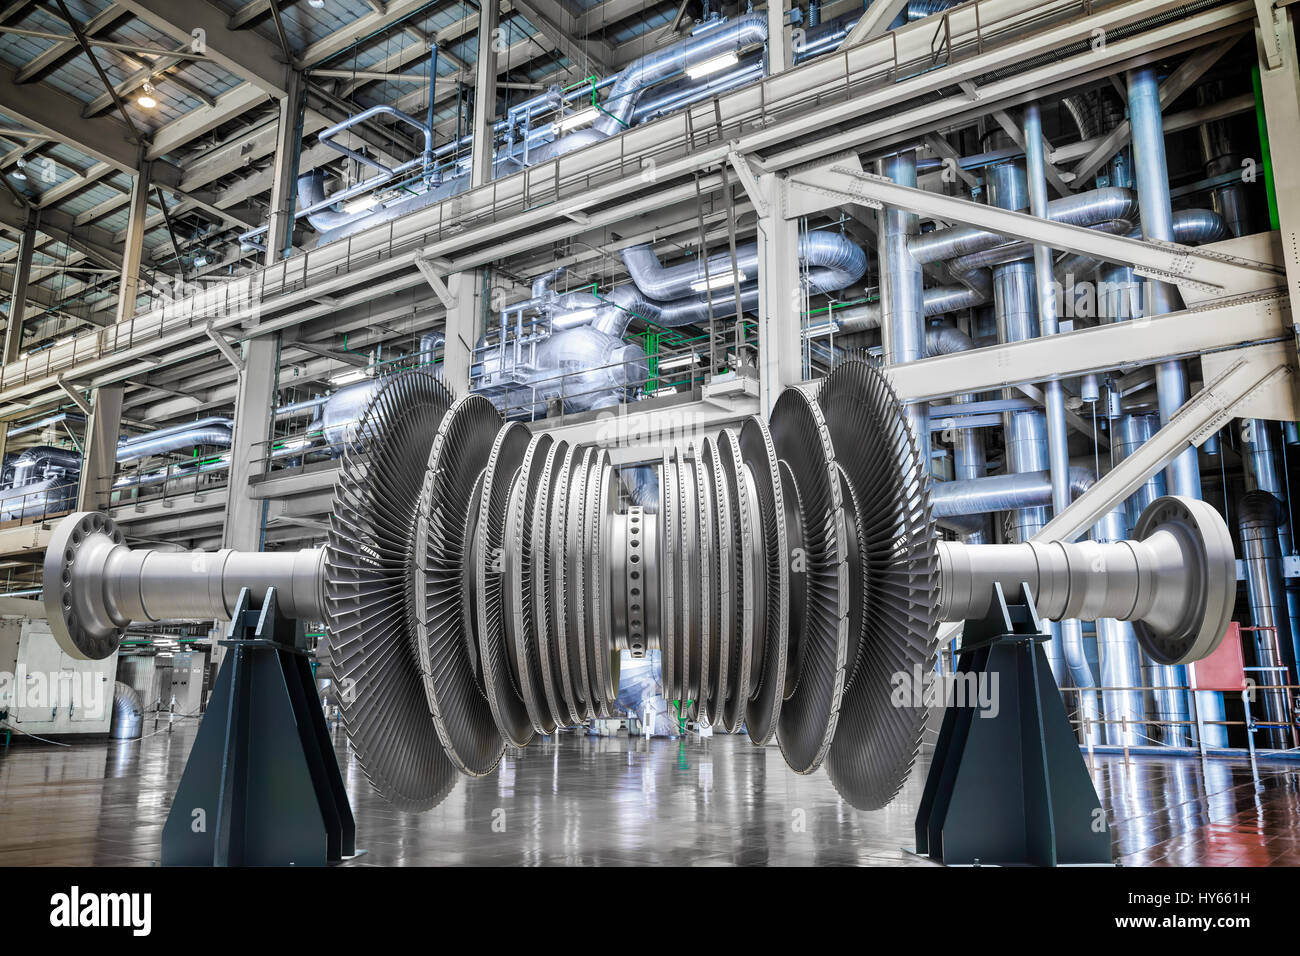 Steam turbine of power generator in an industrial thermal power